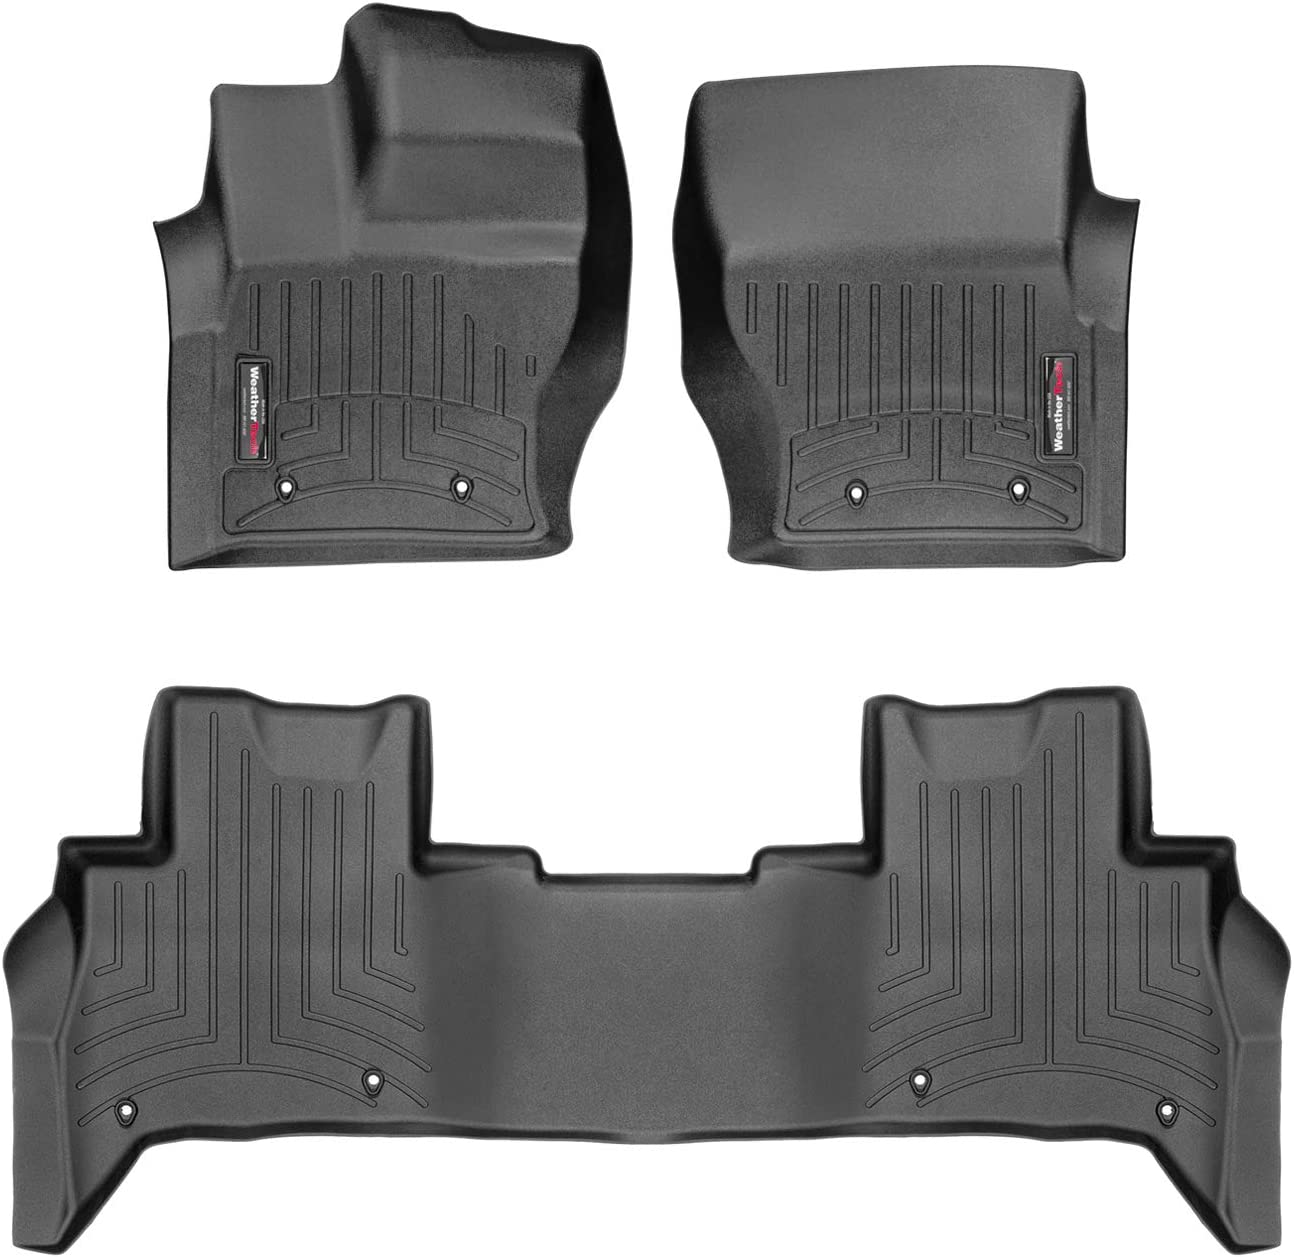 WeatherTech Custom Fit FloorLiner for - Bombing free shipping Land Rover Discovery Oakland Mall 1st